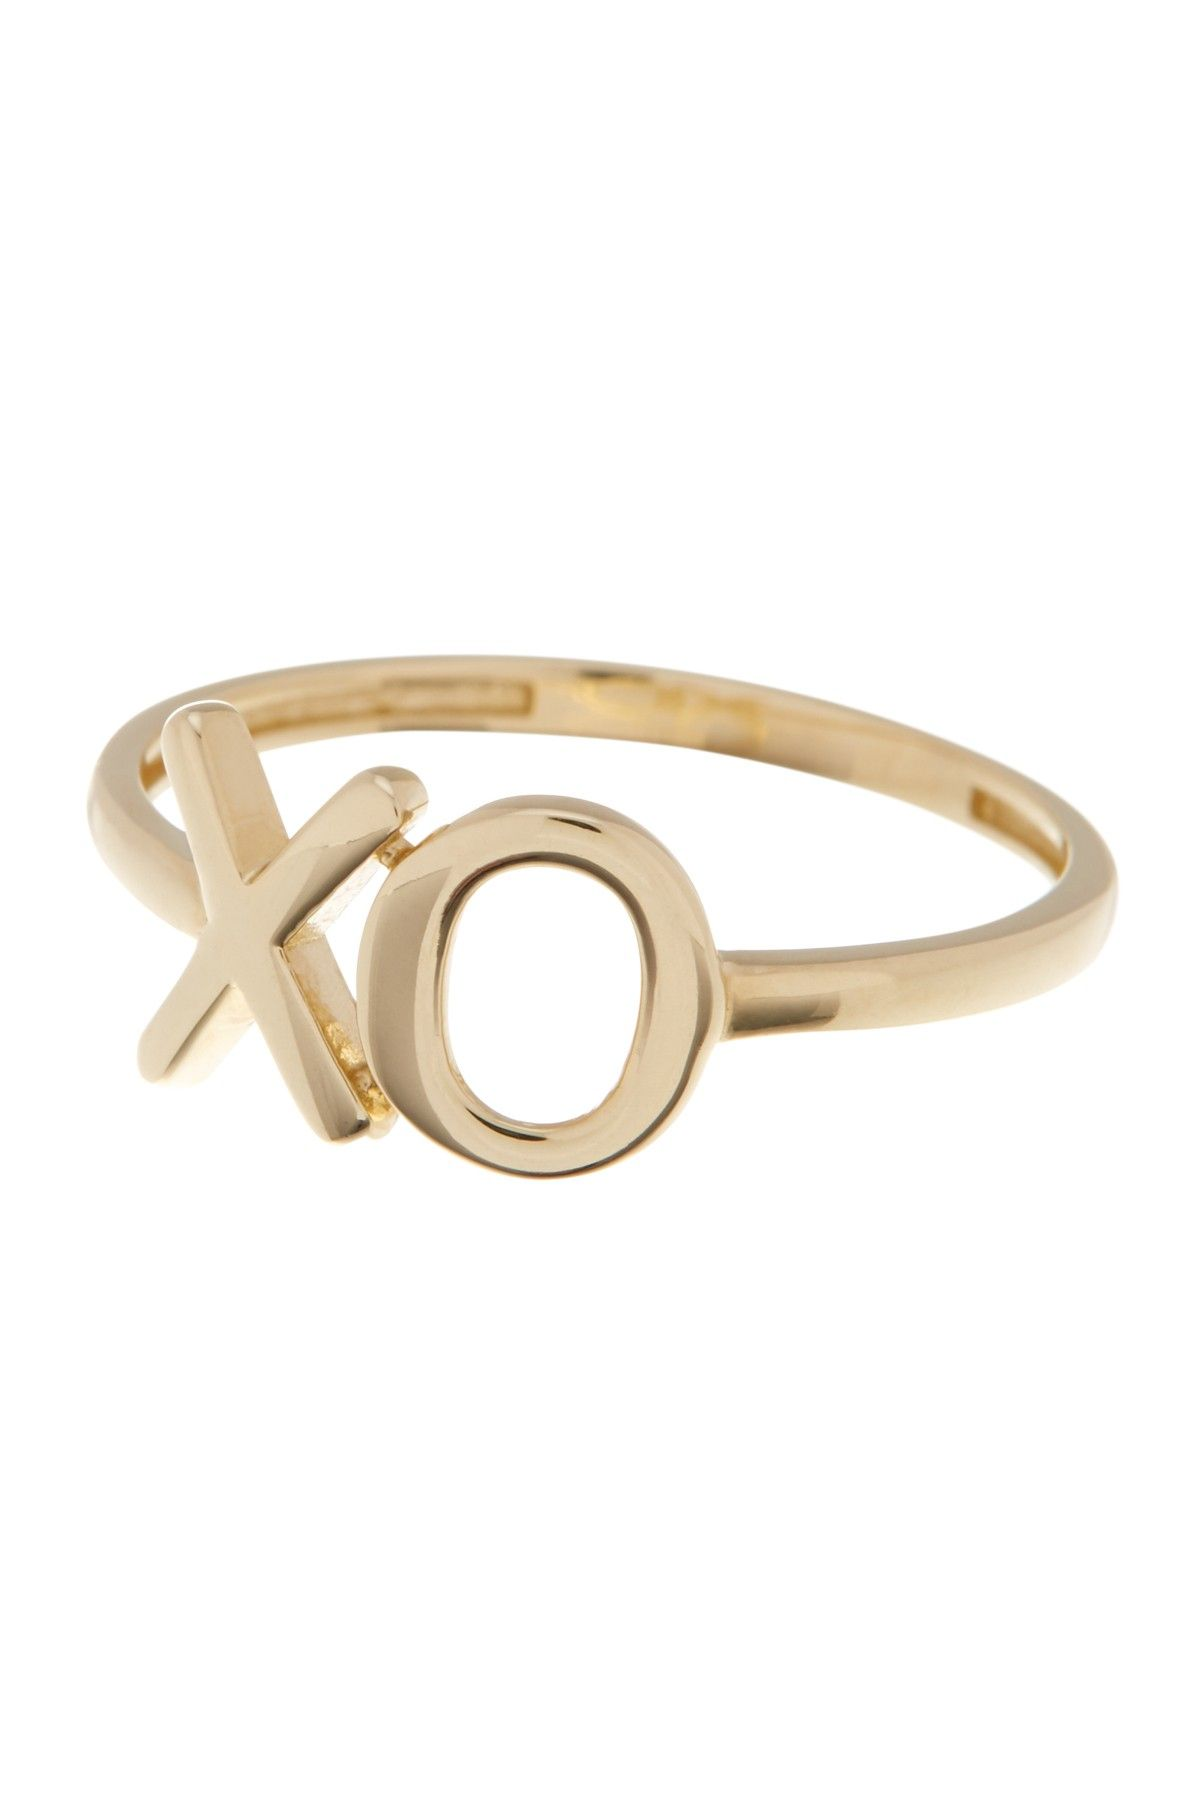 K yellow gold x u o ring on hautelook my shopping list my